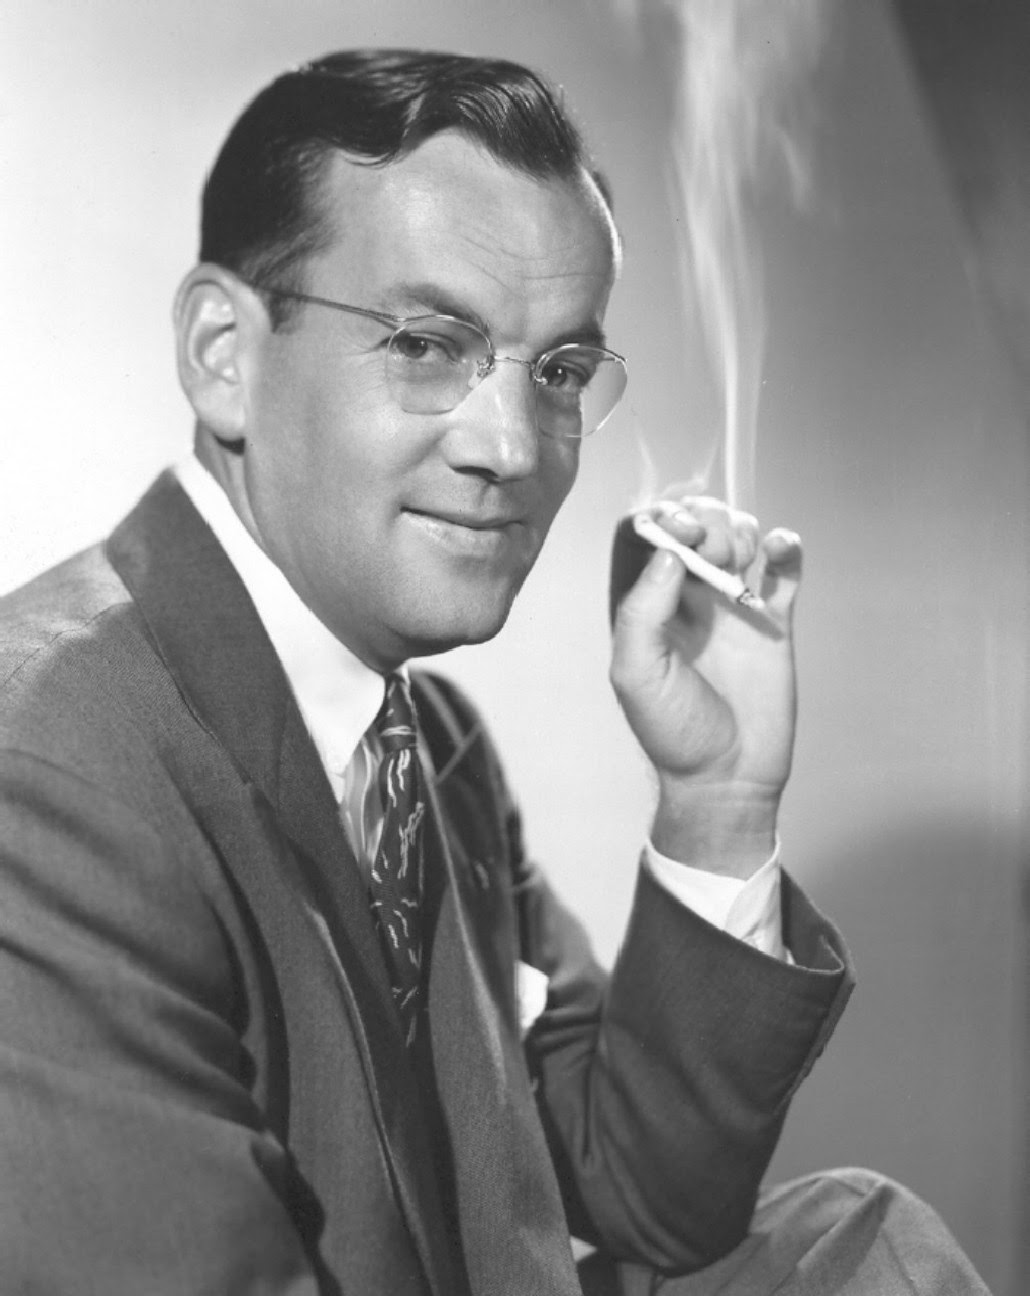 Black and white photo of Glen Miller smoking a cigarette in a suit